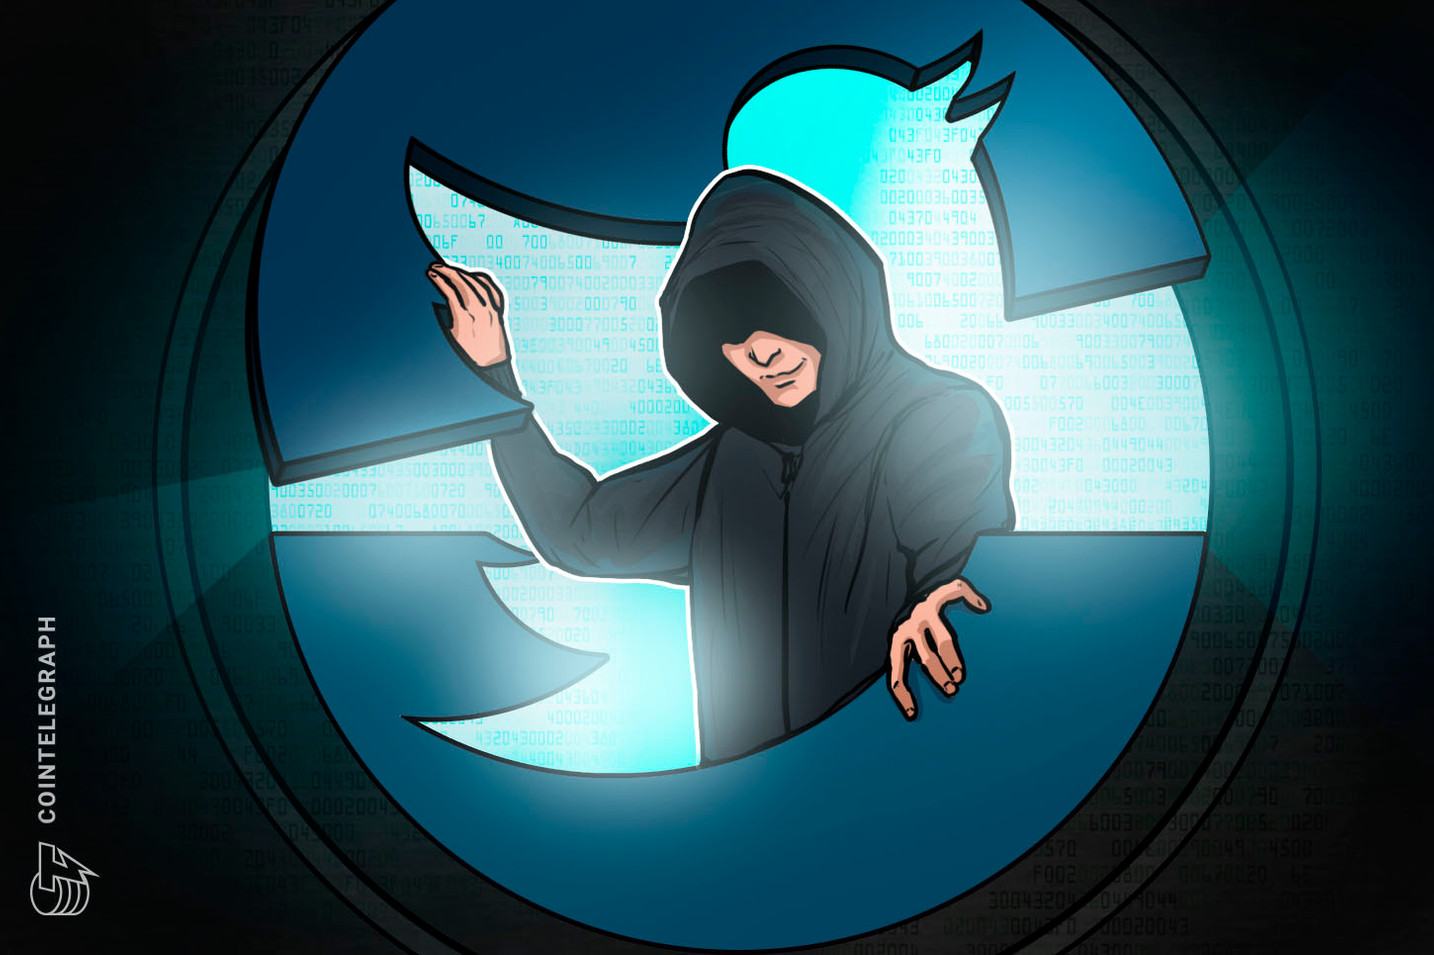 Florida minor arrested in Twitter bitcoin hack